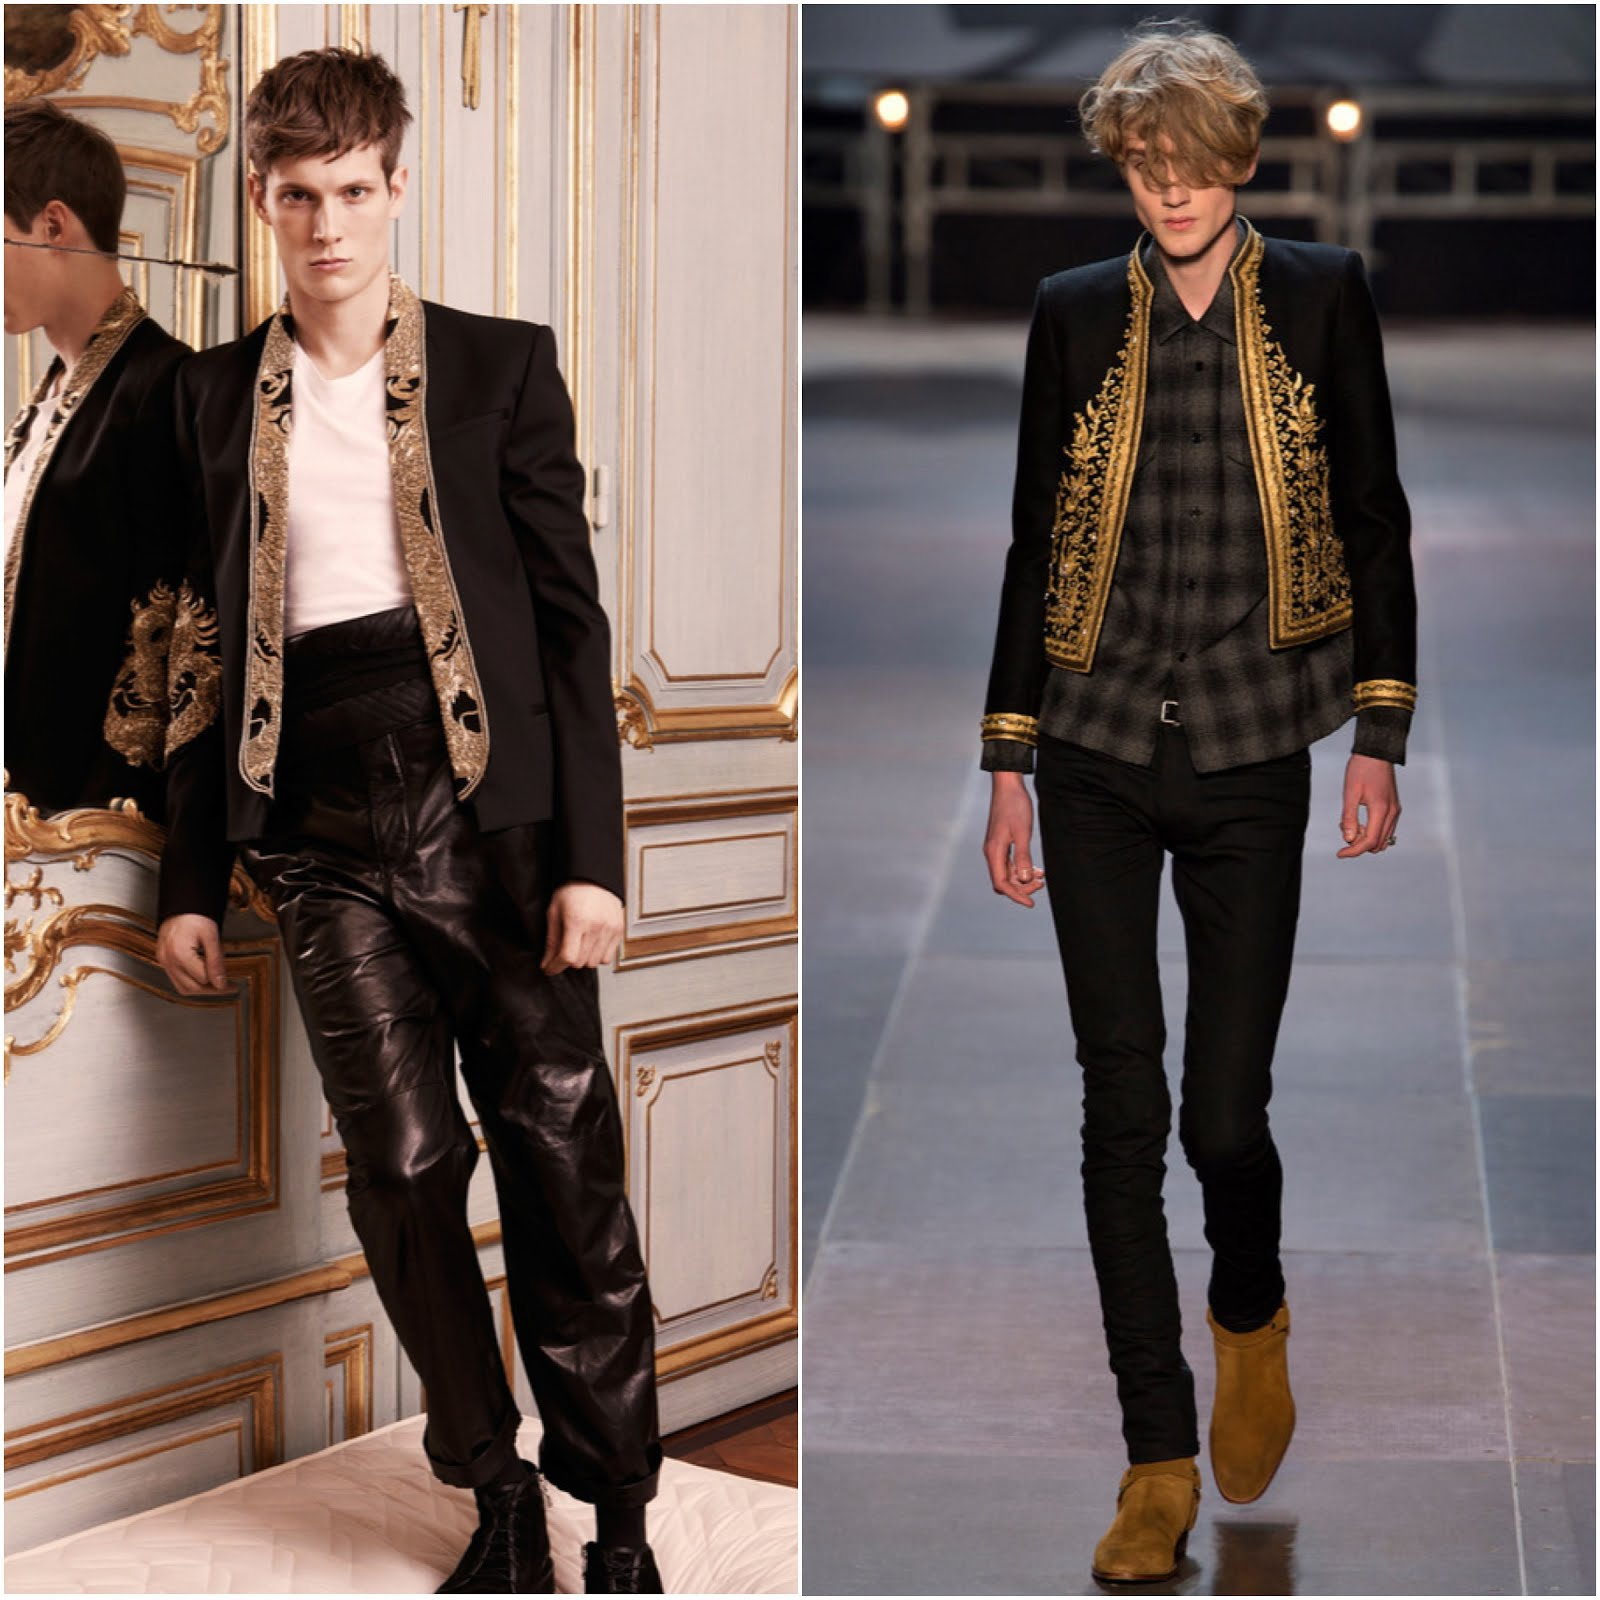 00O00 Menswear Blog: Peter Brant Jr. and Harry Brant in Balmain and Saint Laurent - 'PUNK: Chaos To Couture' Costume Gala May 2013